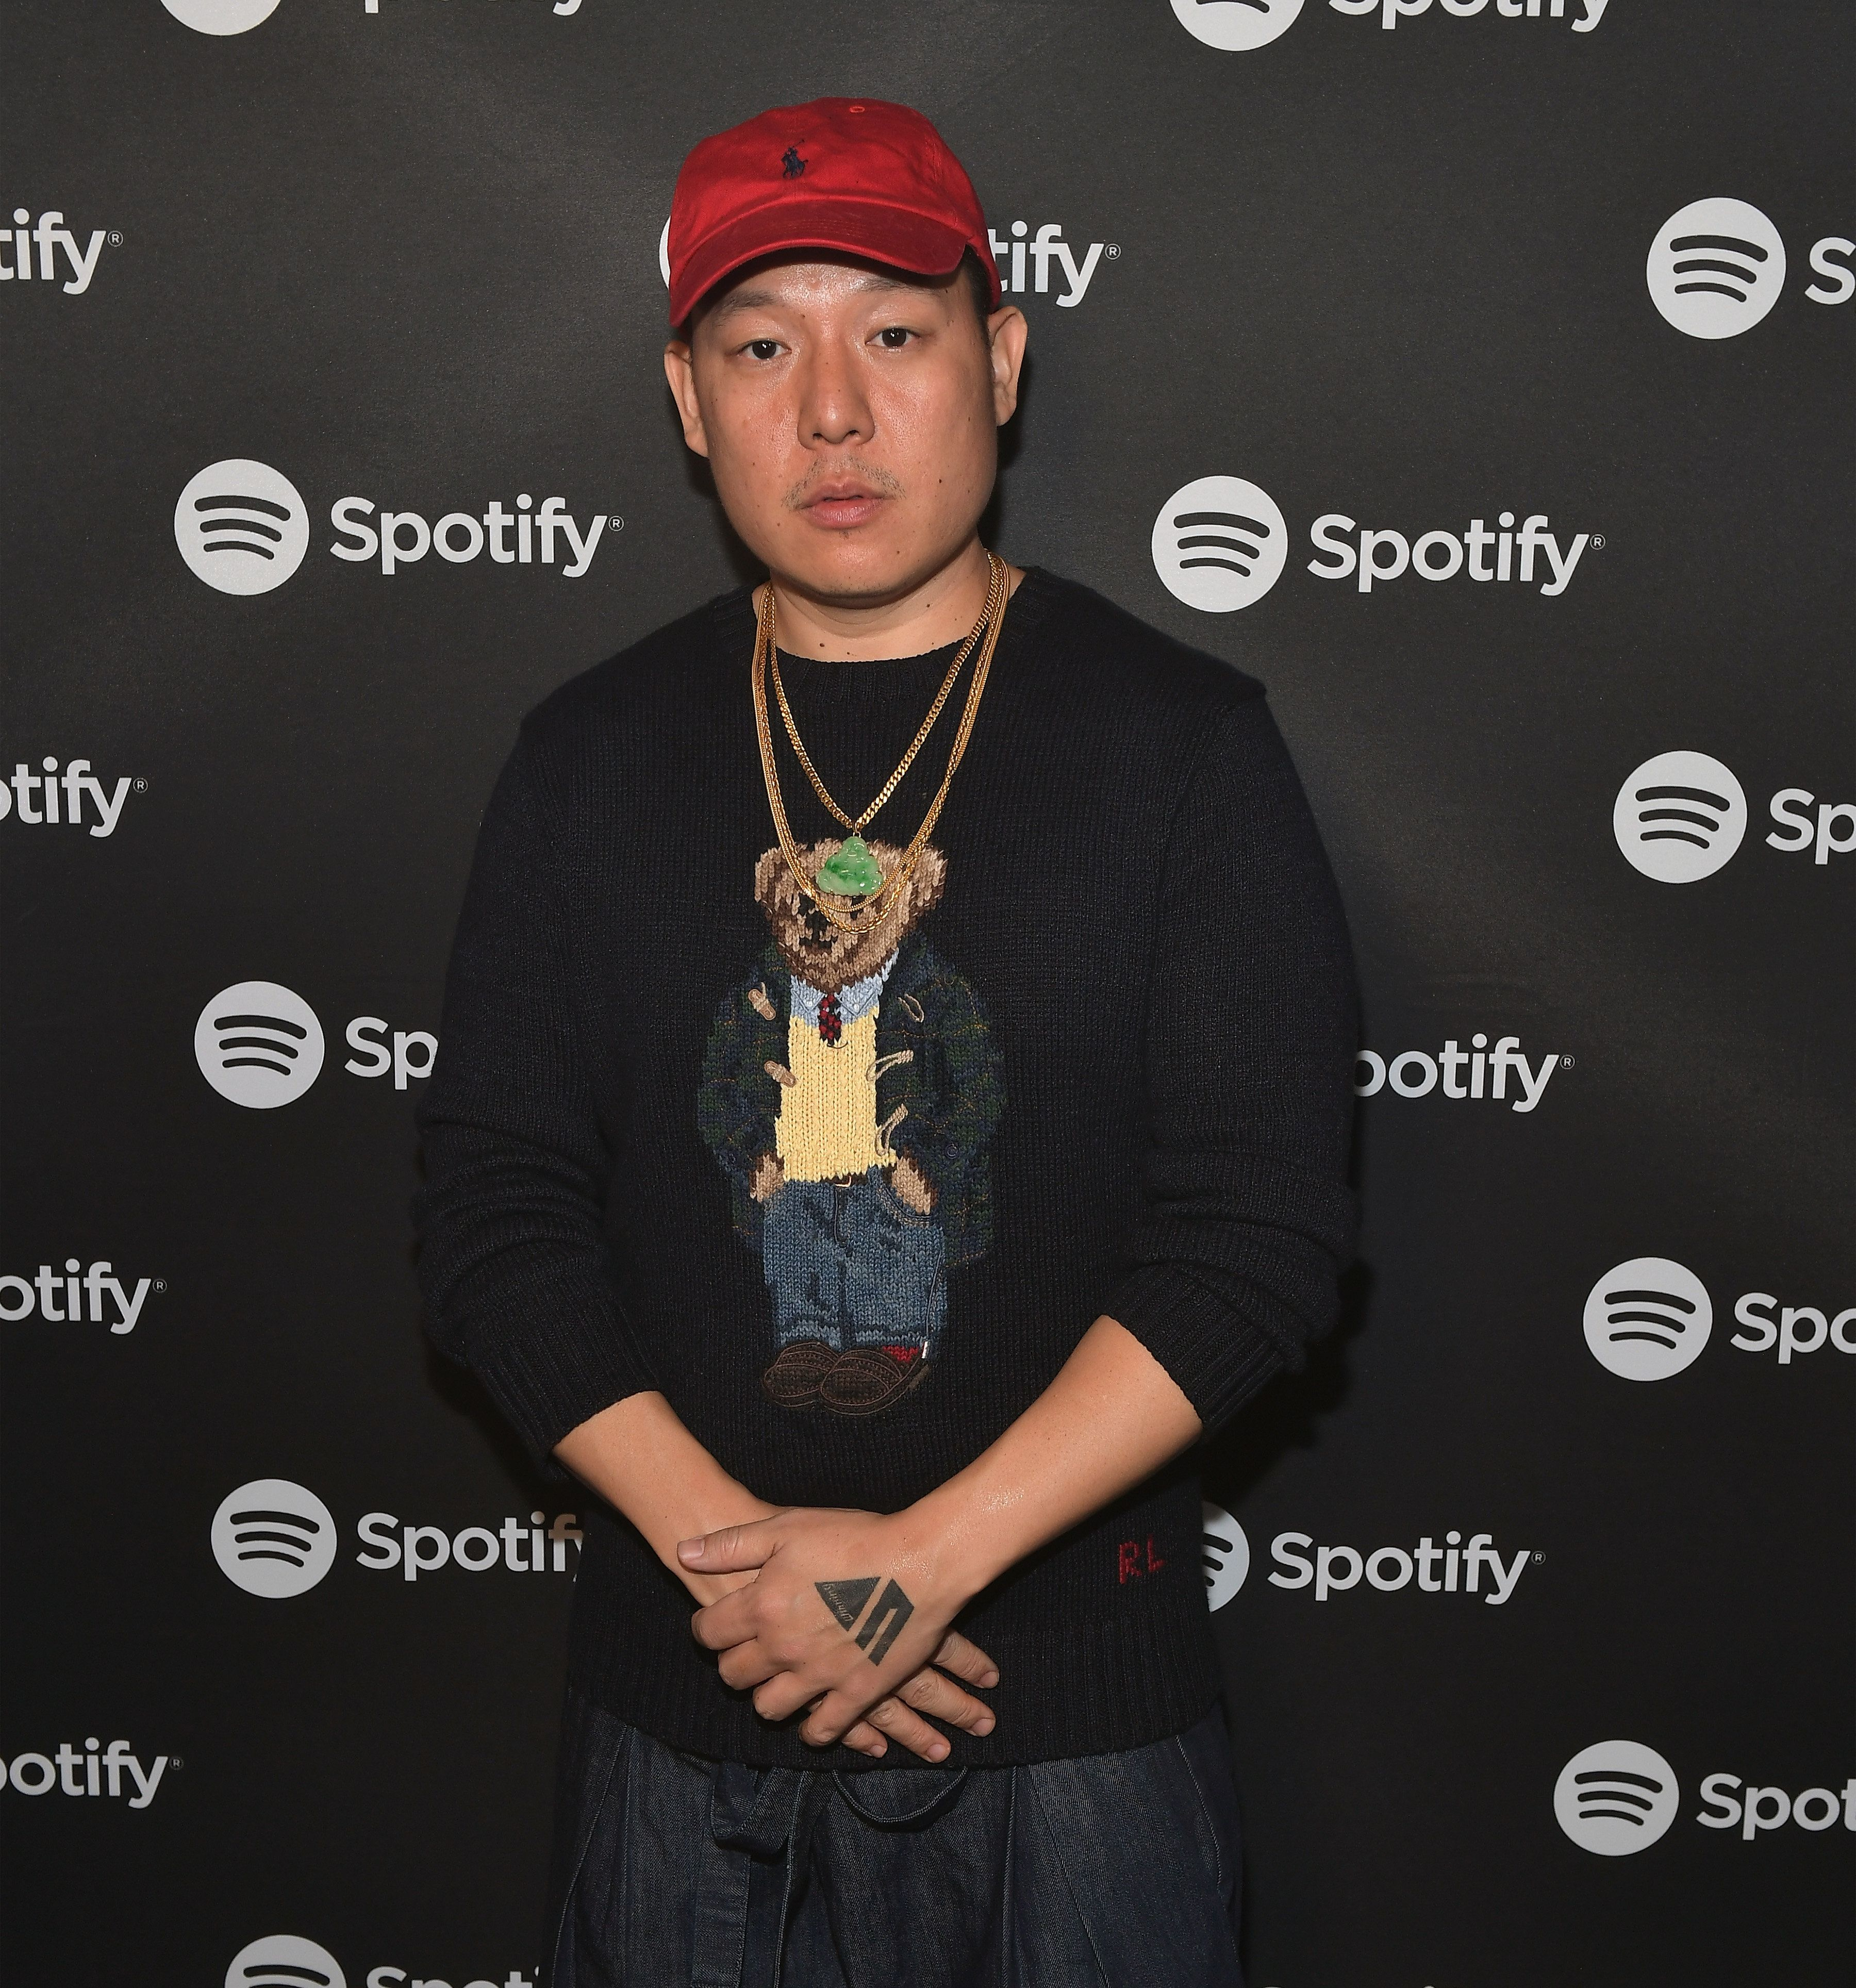 LAS VEGAS, NV - JANUARY 09:  Chef Eddie Huang attends the Spotify Supper during CES 2018 at Hakkasan Las Vegas Restaurant and Nightclub at MGM Grand Hotel & Casino on January 9, 2018 in Las Vegas, Nevada.  (Photo by Bryan Steffy/Getty Images for Spotify Supper at CES 2018)